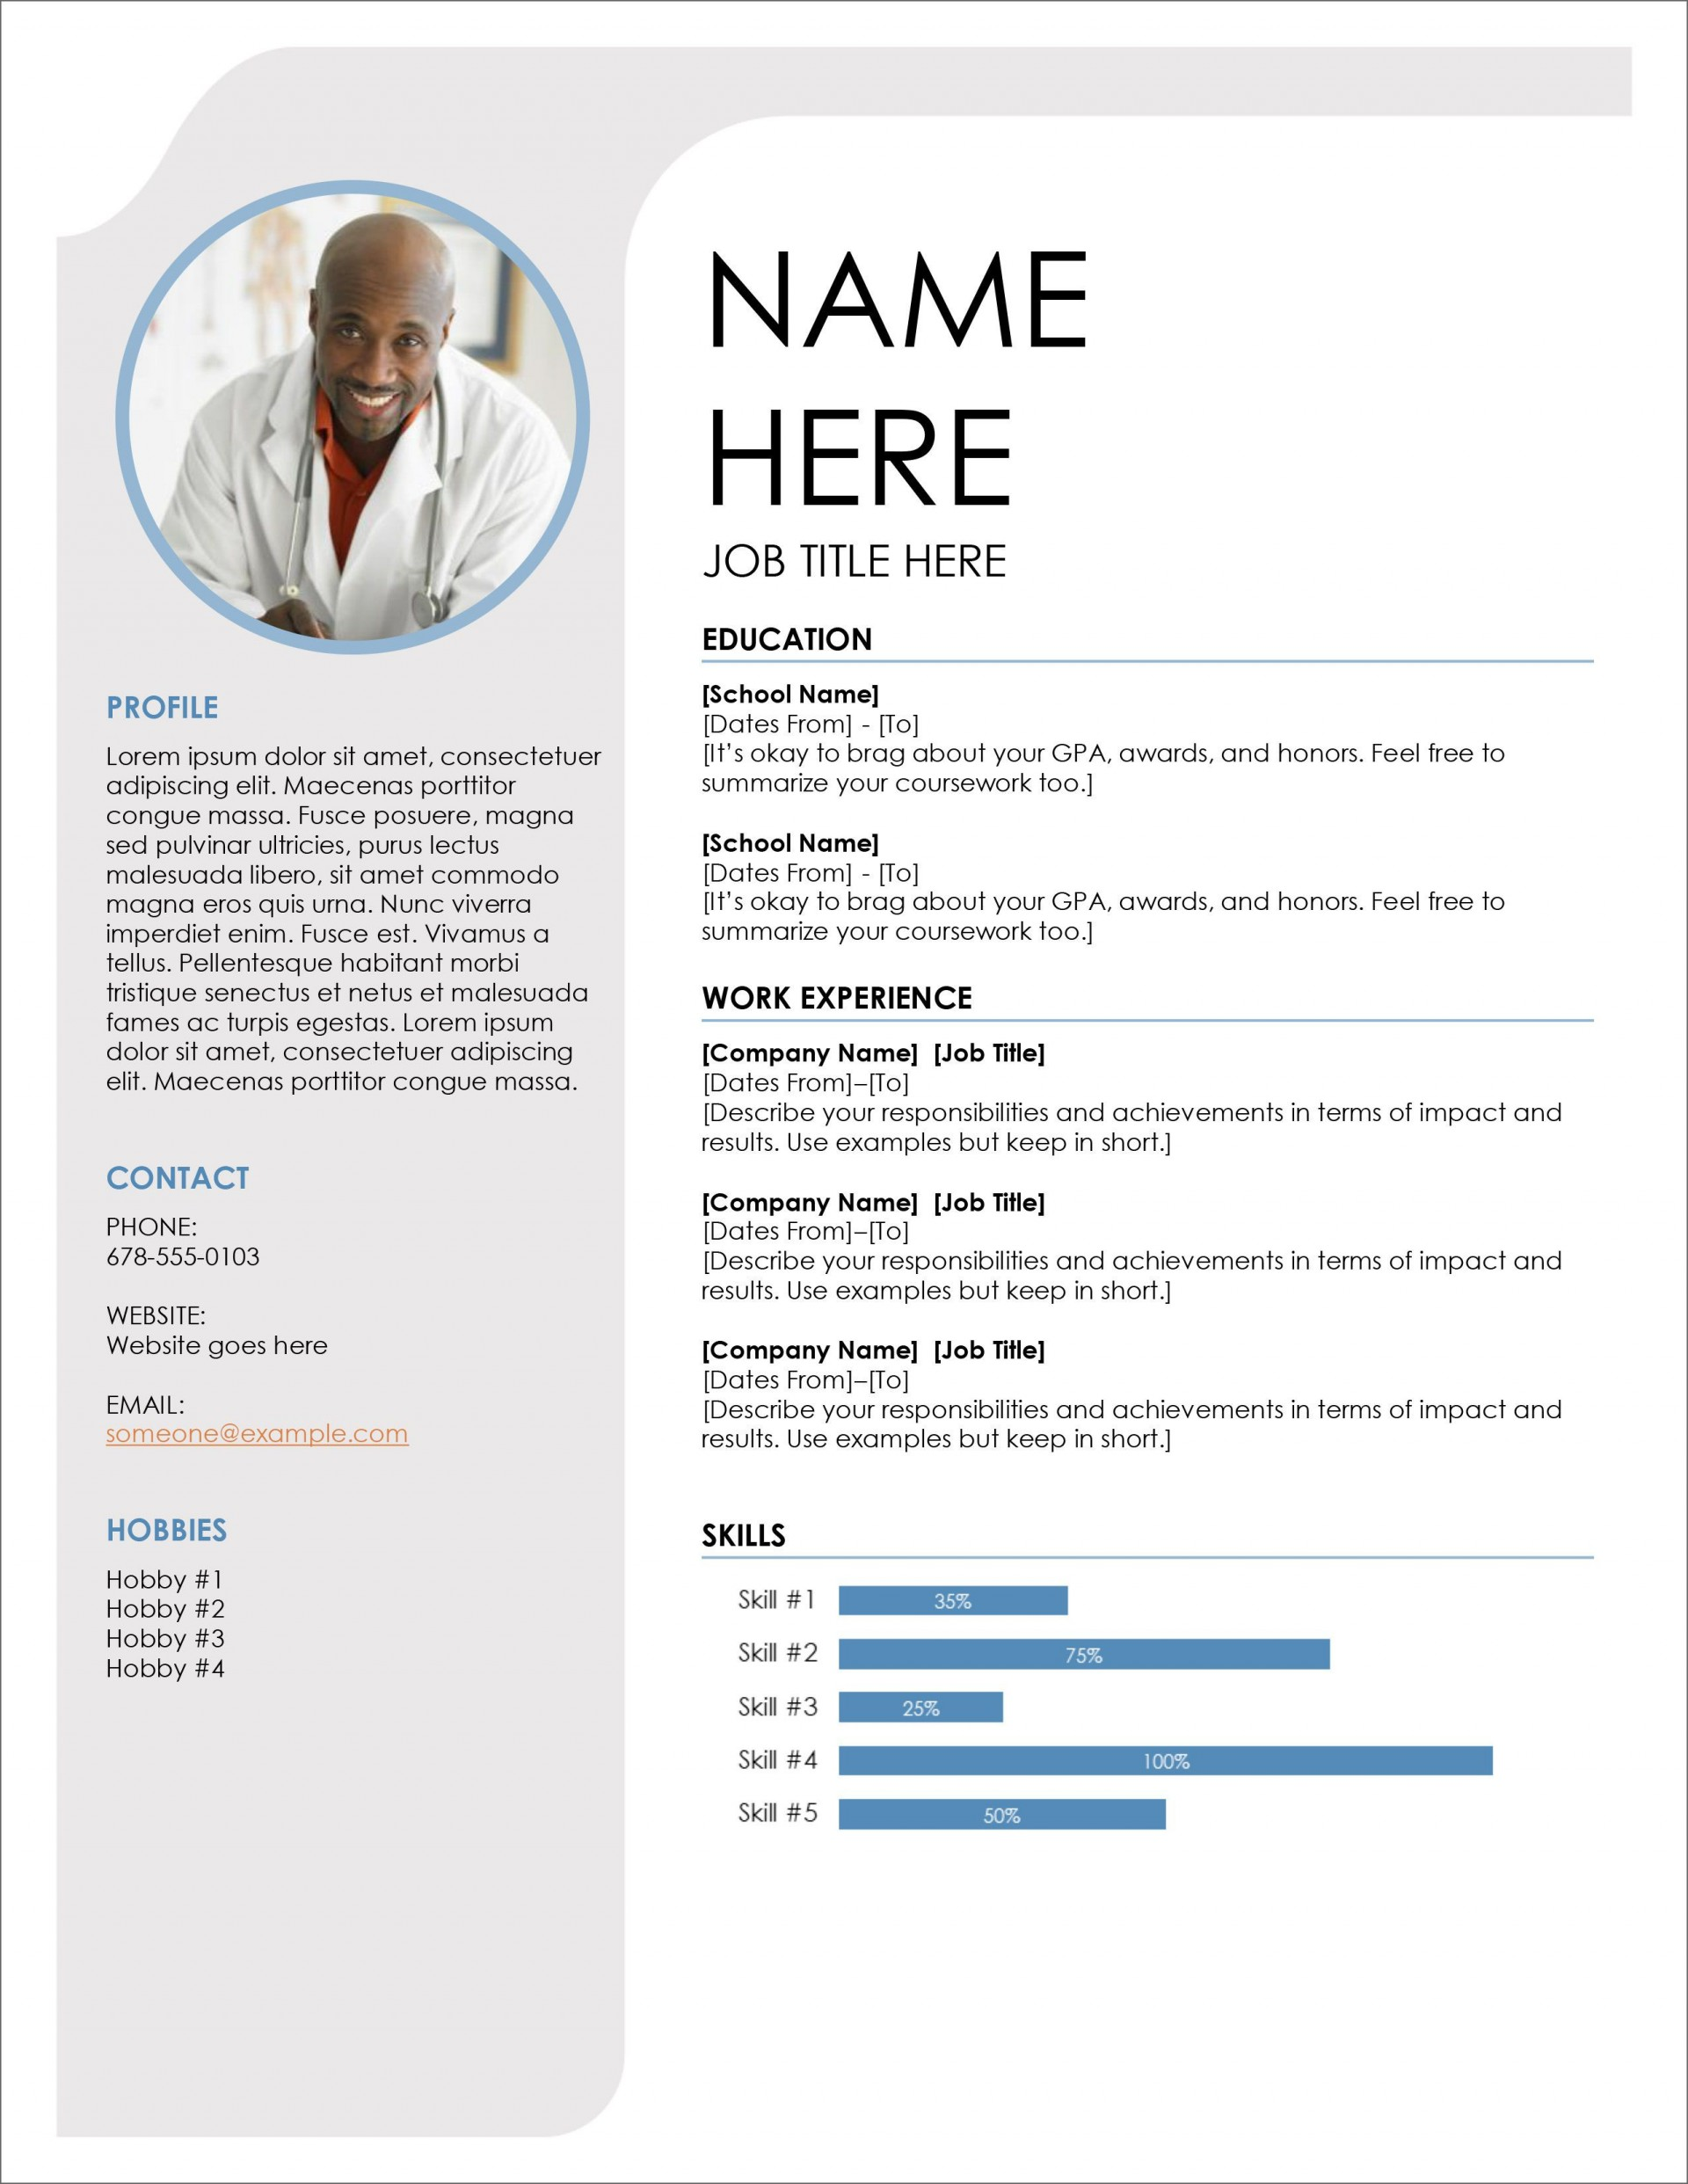 005 Wonderful Download Resume Template Microsoft Word Photo  Creative Free For Fresher Functional1920